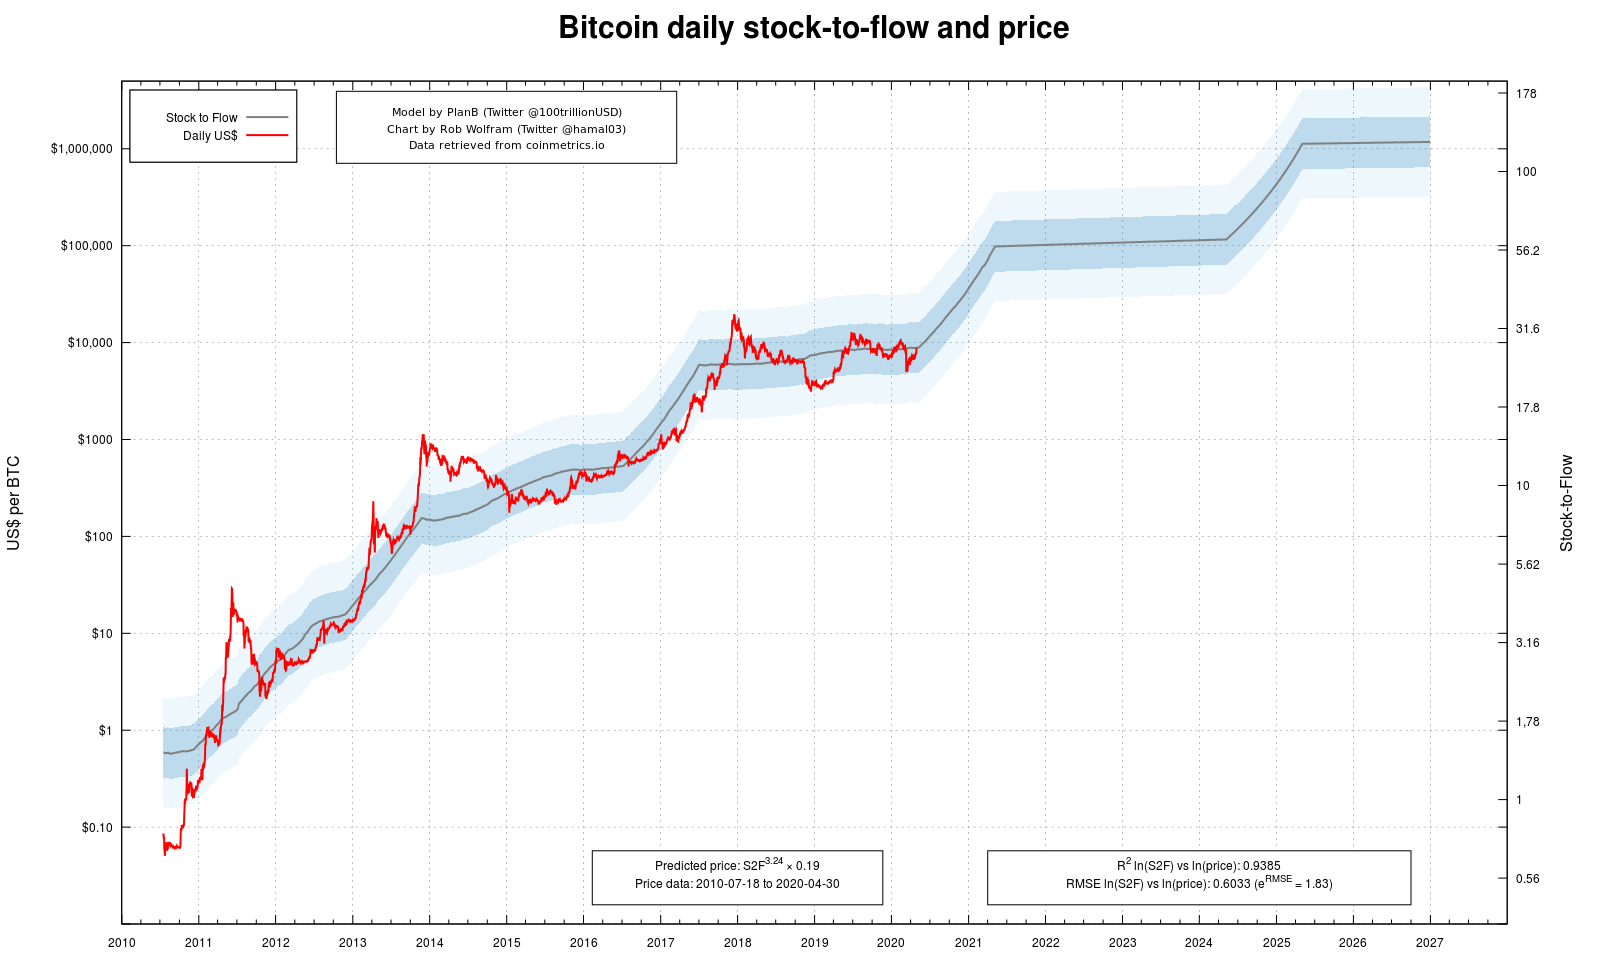 BTC price compared to its stock-to-flow